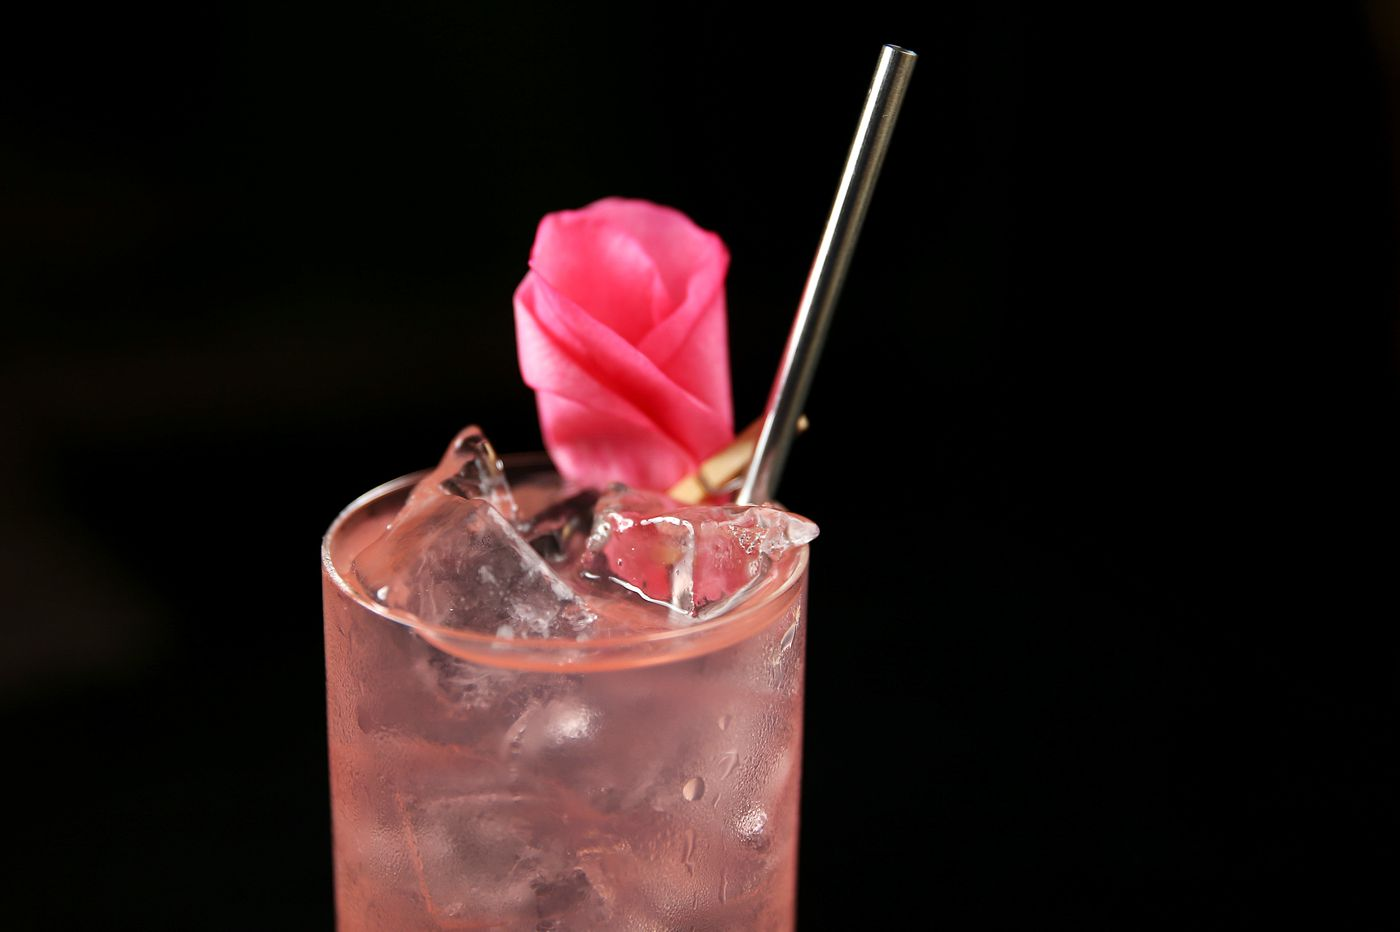 Forsythia's RBG&T toasts the famed Justice in a rosy Bluecoat cocktail